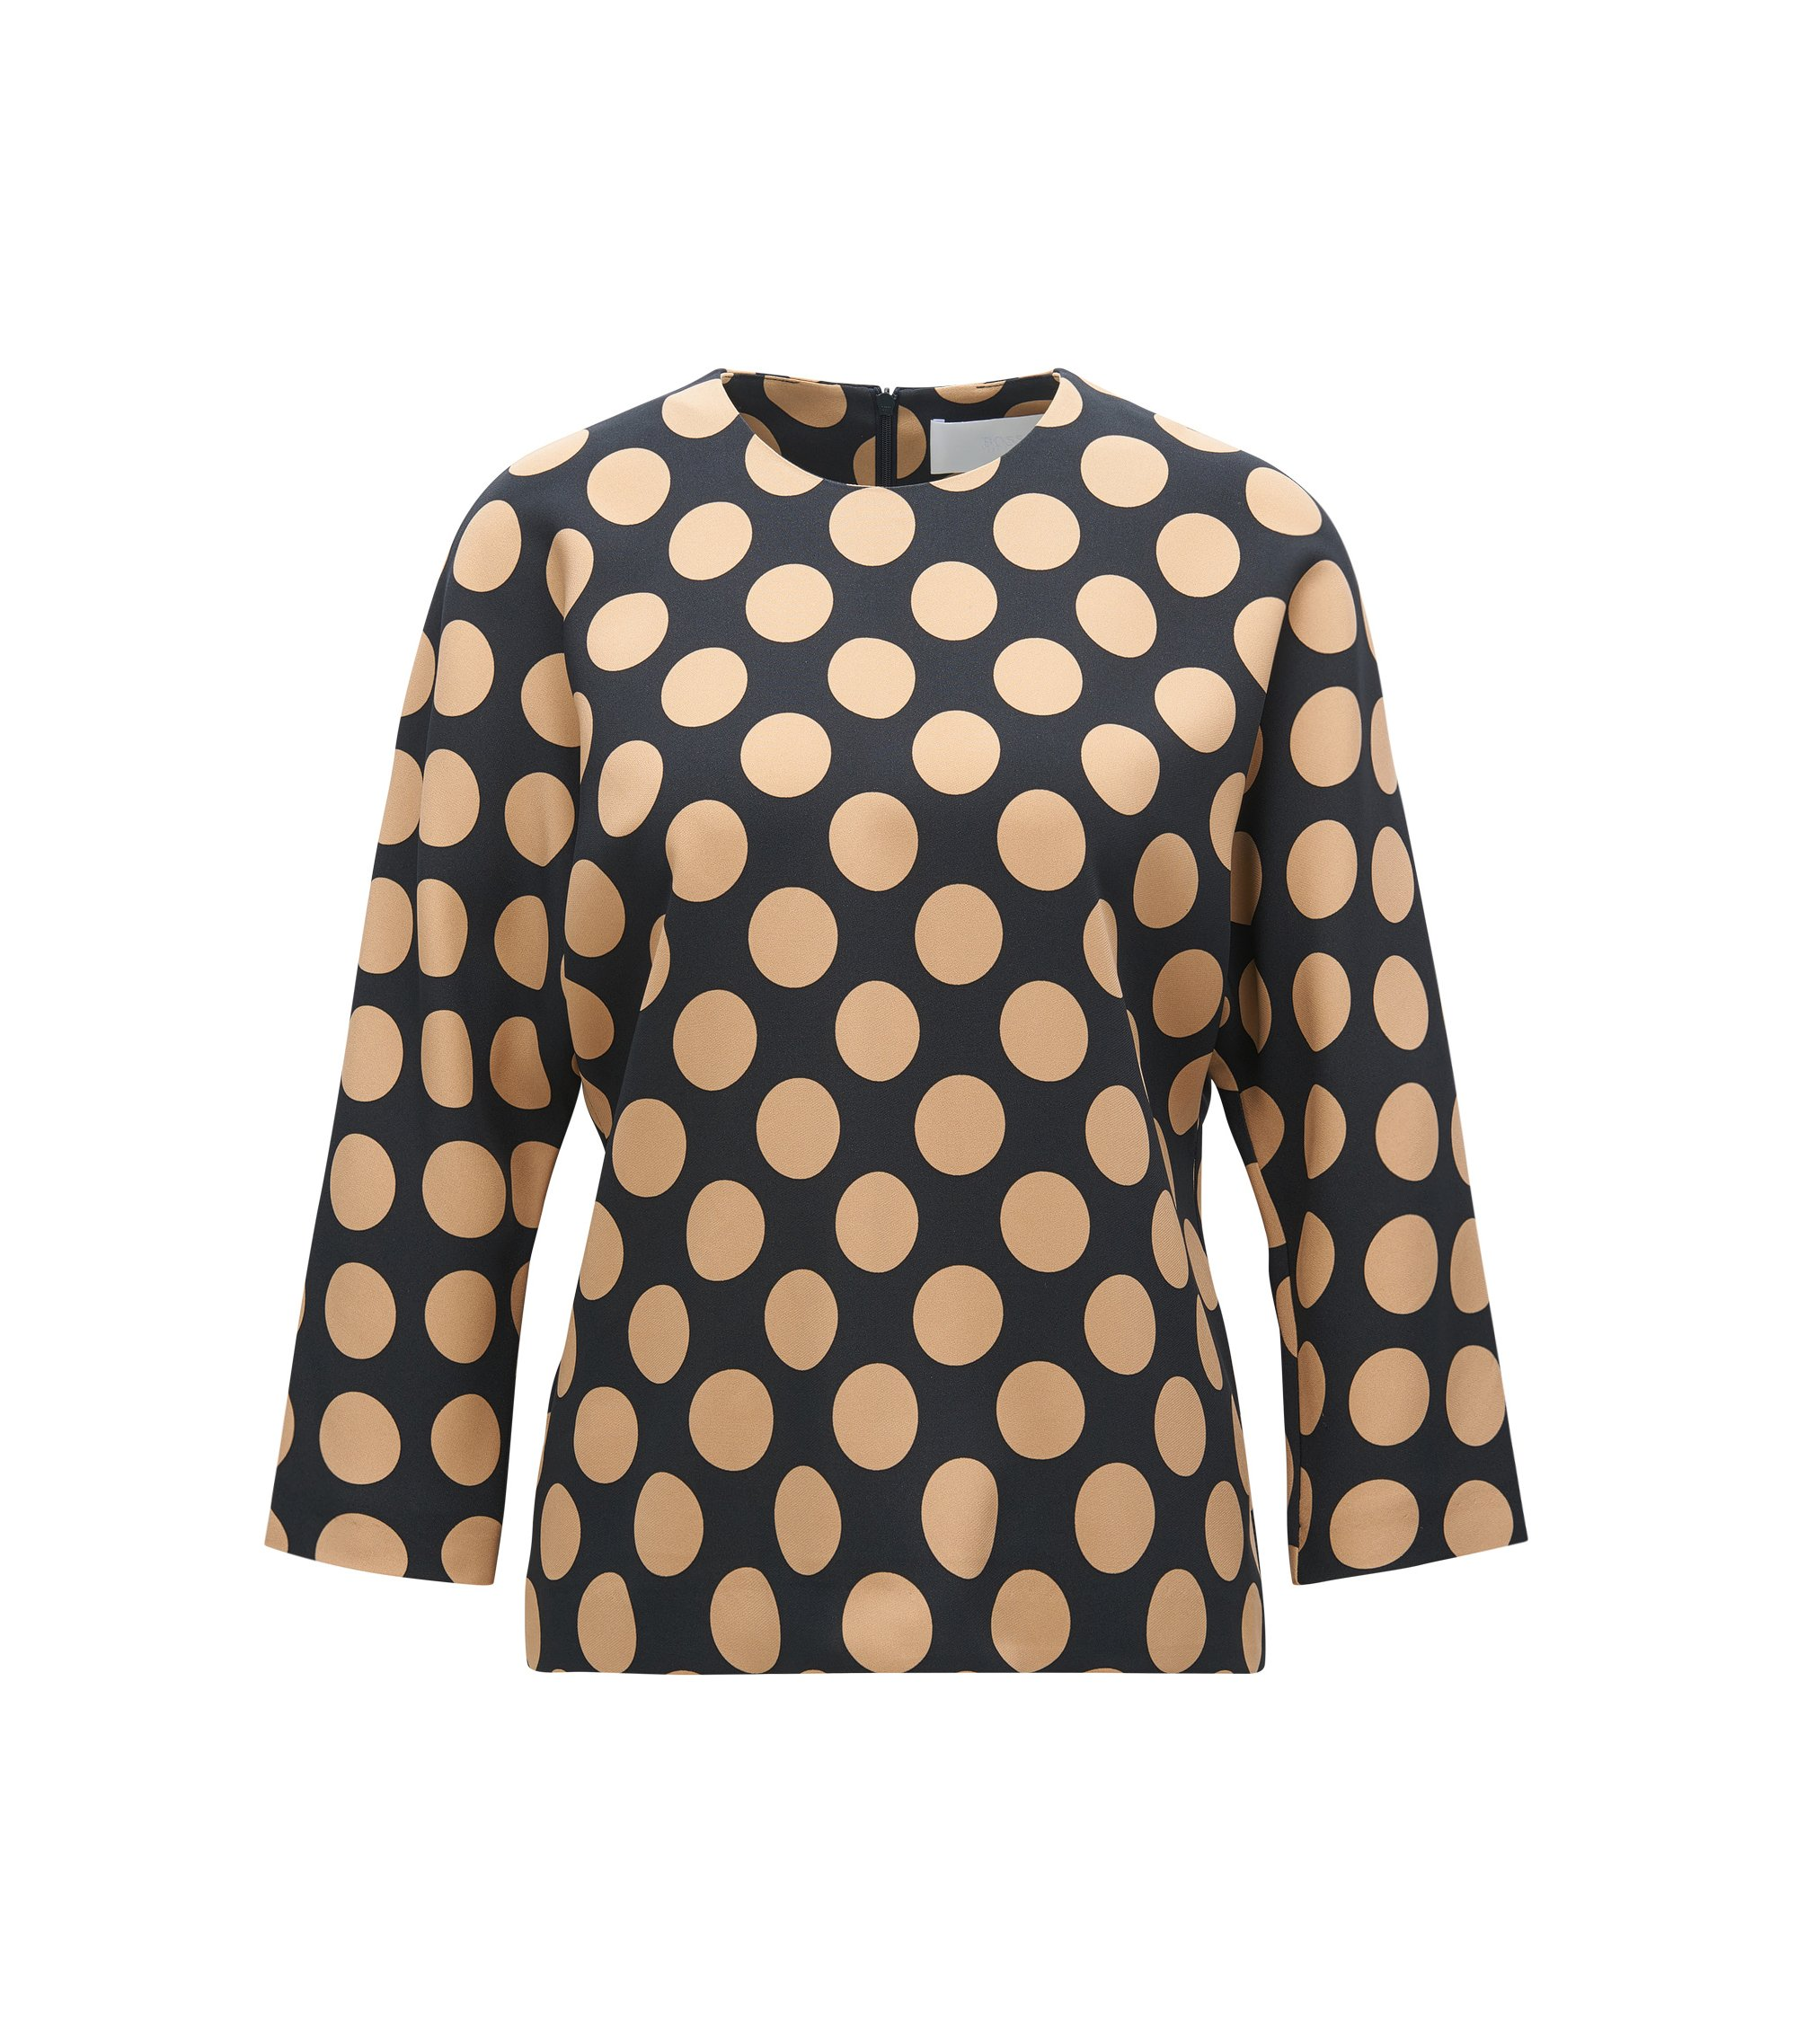 Polka-dot top in stretch fabric, Patterned